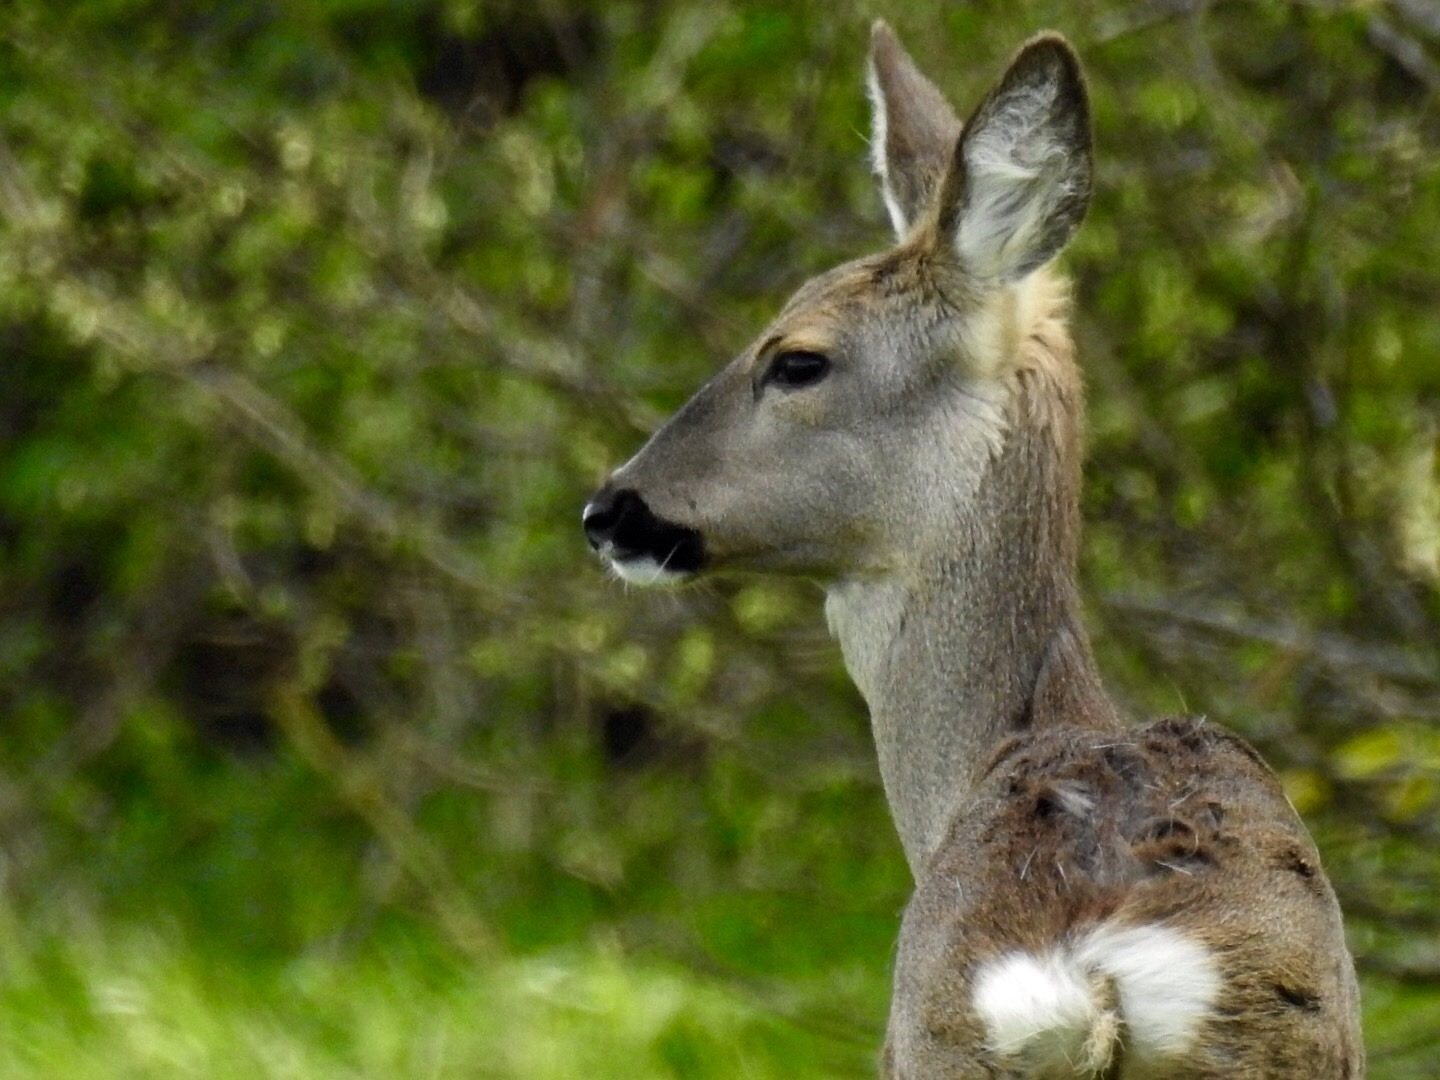 Photo of a deer by Oxford Mail Camera Club member Duncan Becker of Cumnor.